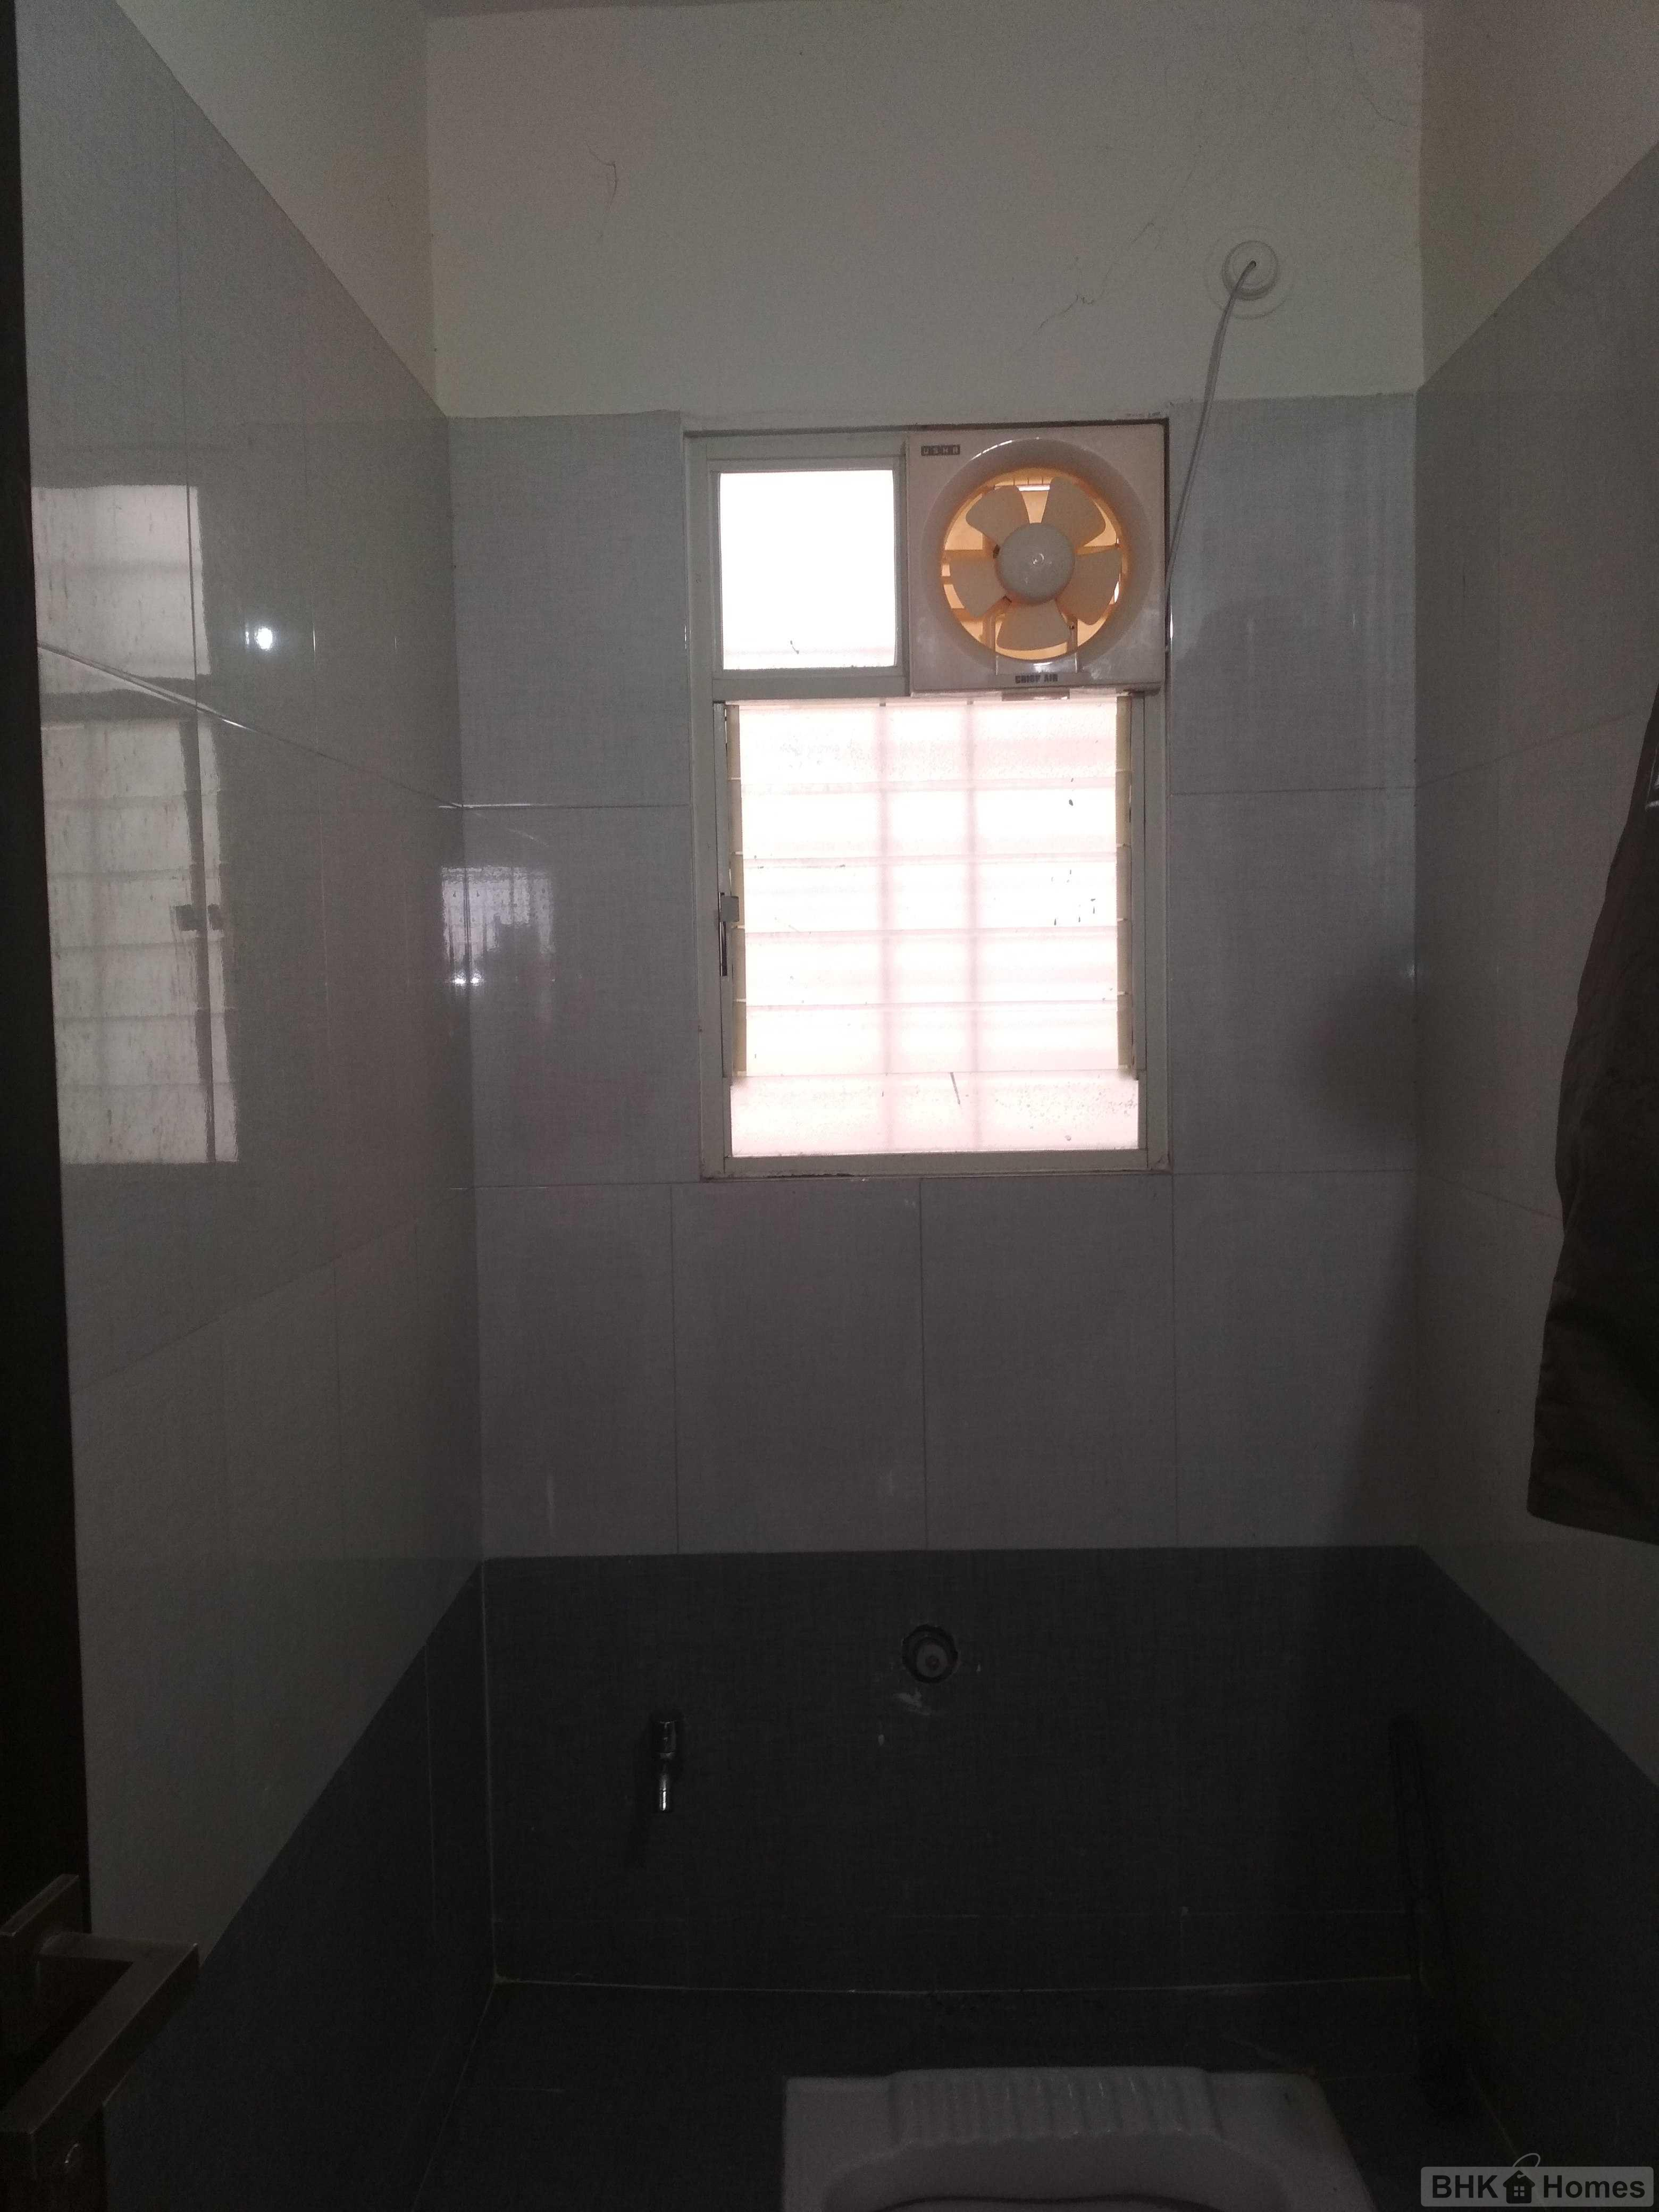 2 BHK Flat for sale in Lohgaon, Pune